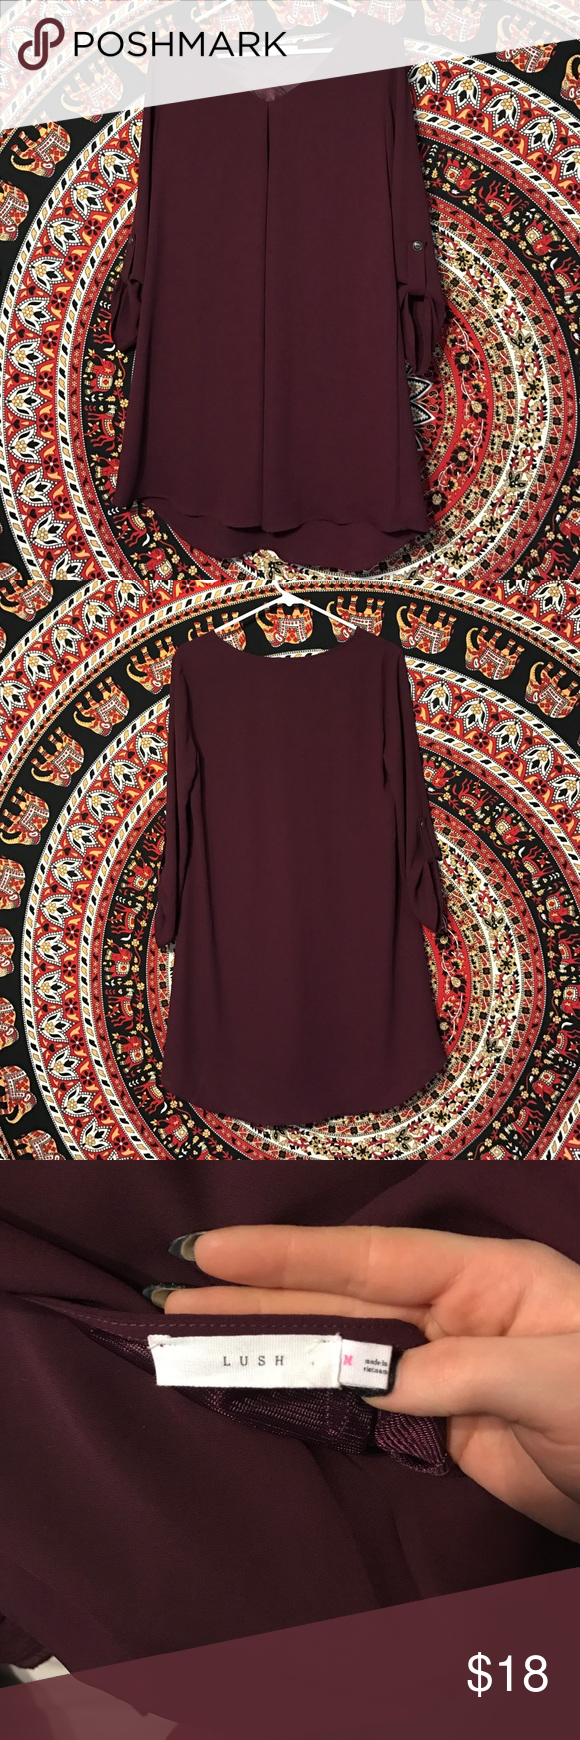 Maroon shift dress This dress is so comfortable & the color is great! I bought it without trying it on, it just doesn't fit my body type quite right. Lush Dresses Long Sleeve